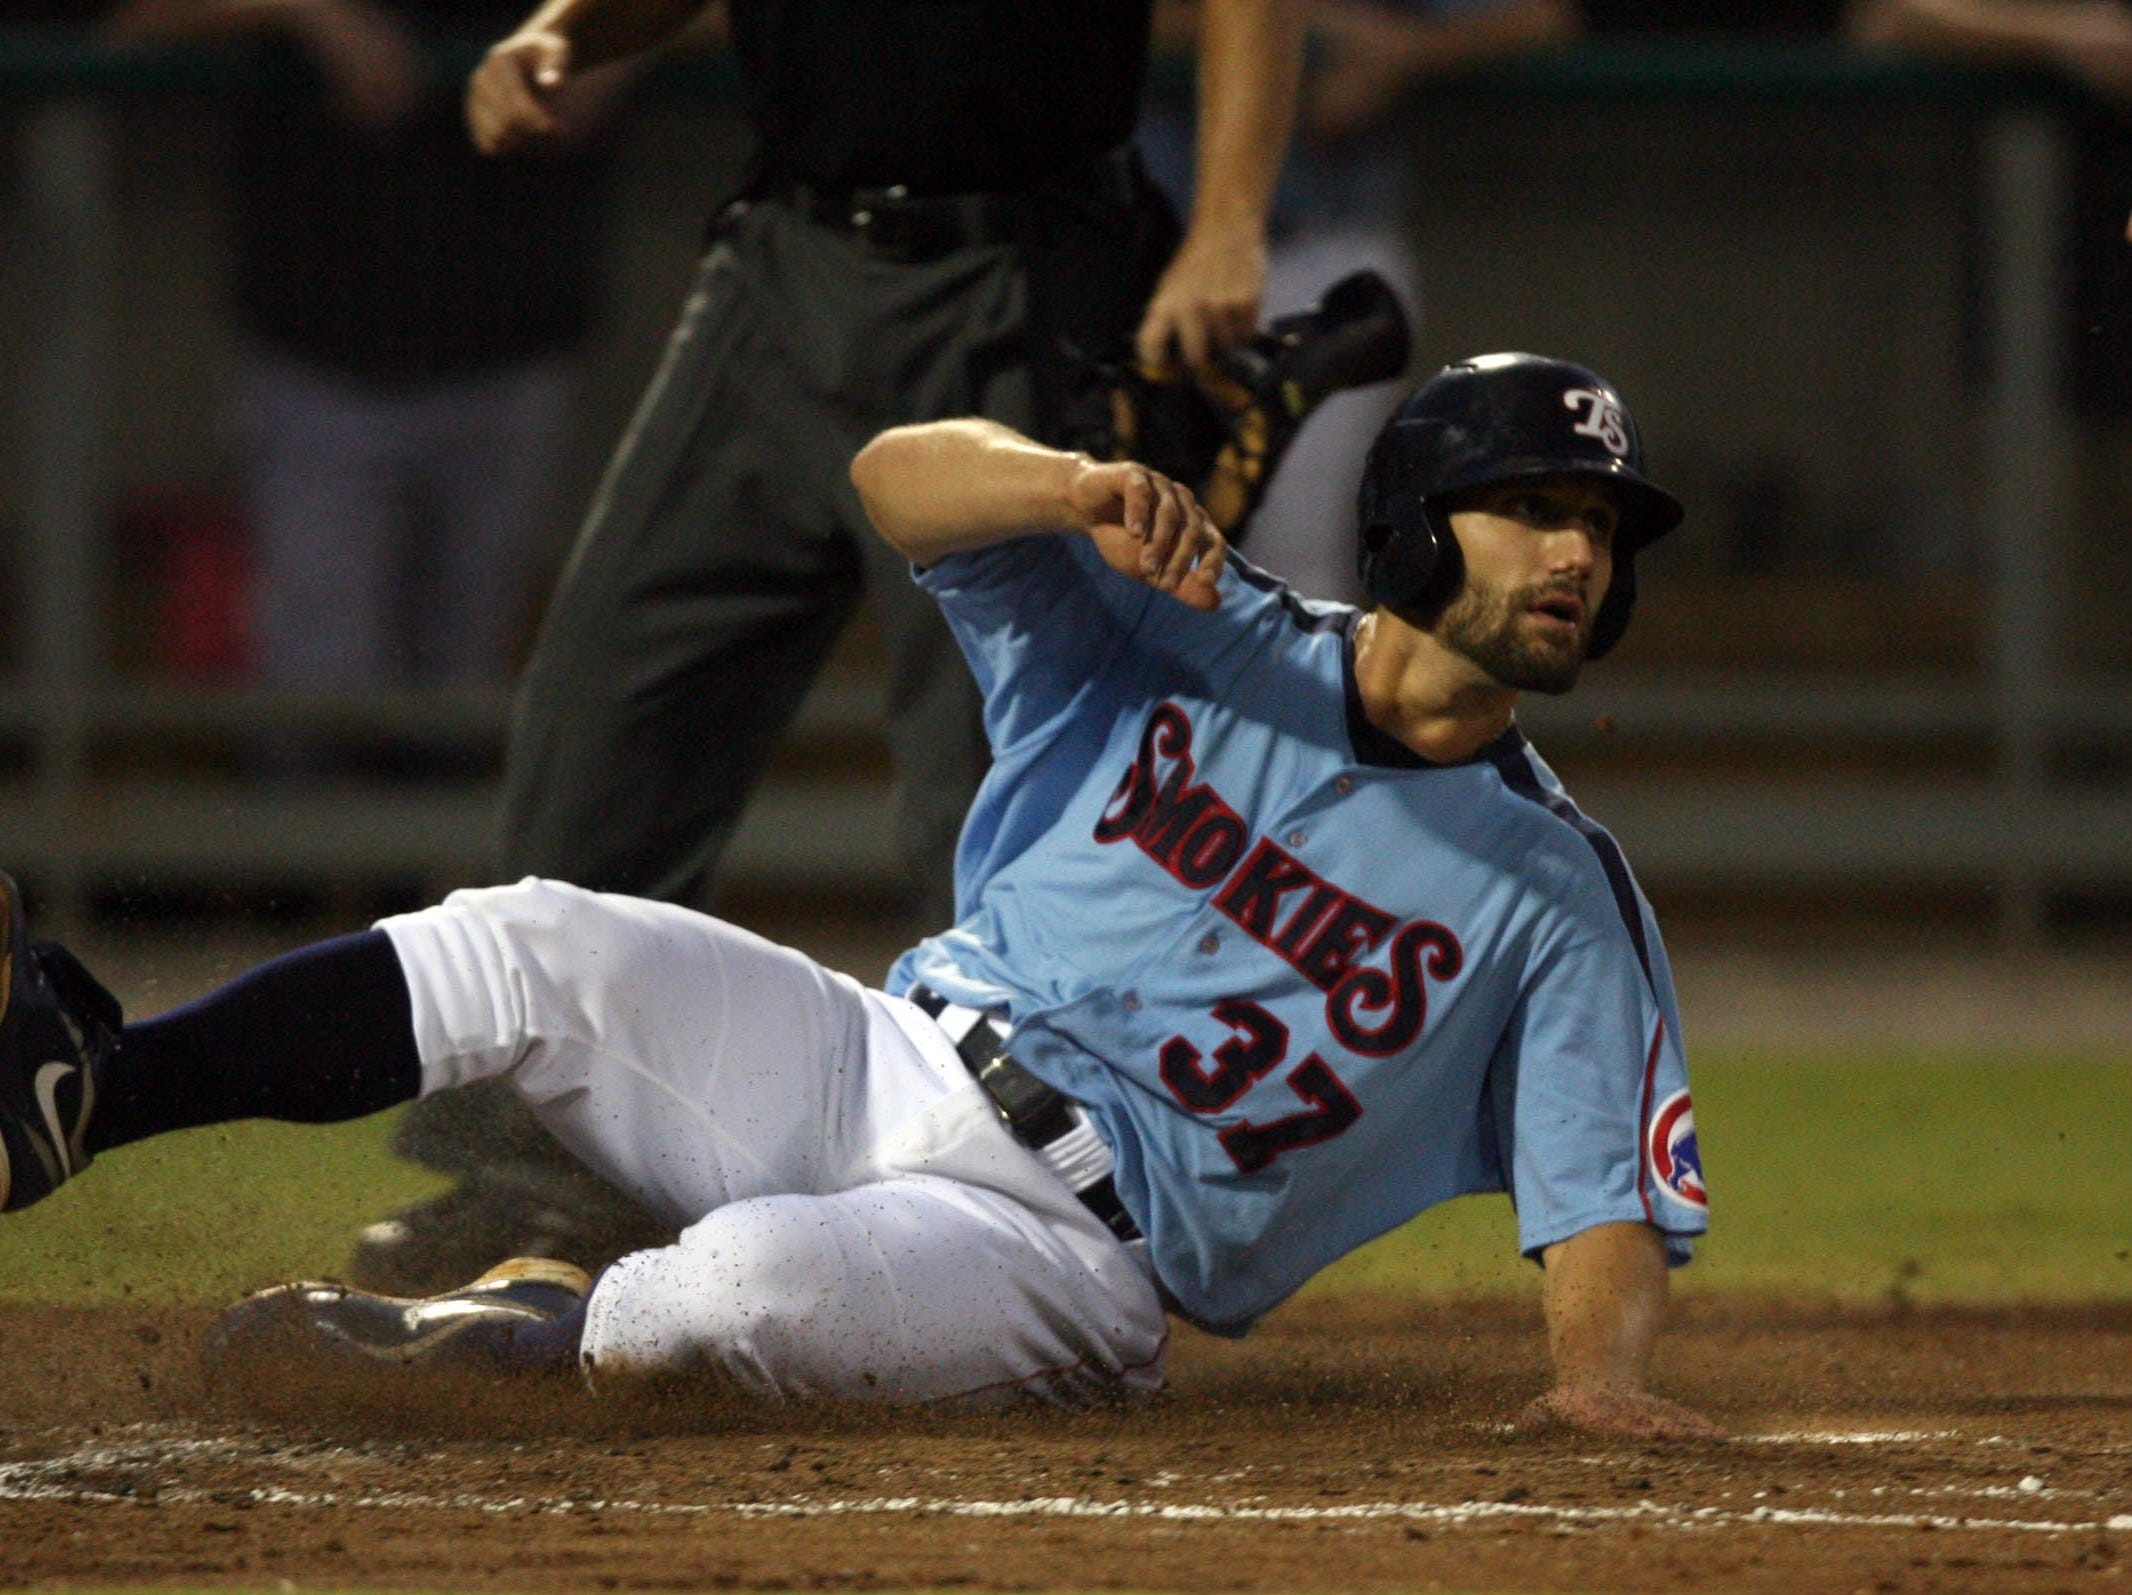 Tennessee Smokies Russ Canzler slides into home for a run during the game against the Jacksonville Suns during game 2 of the Southern League championship series at Smokies Park Wednesday, Sept. 15, 2010.